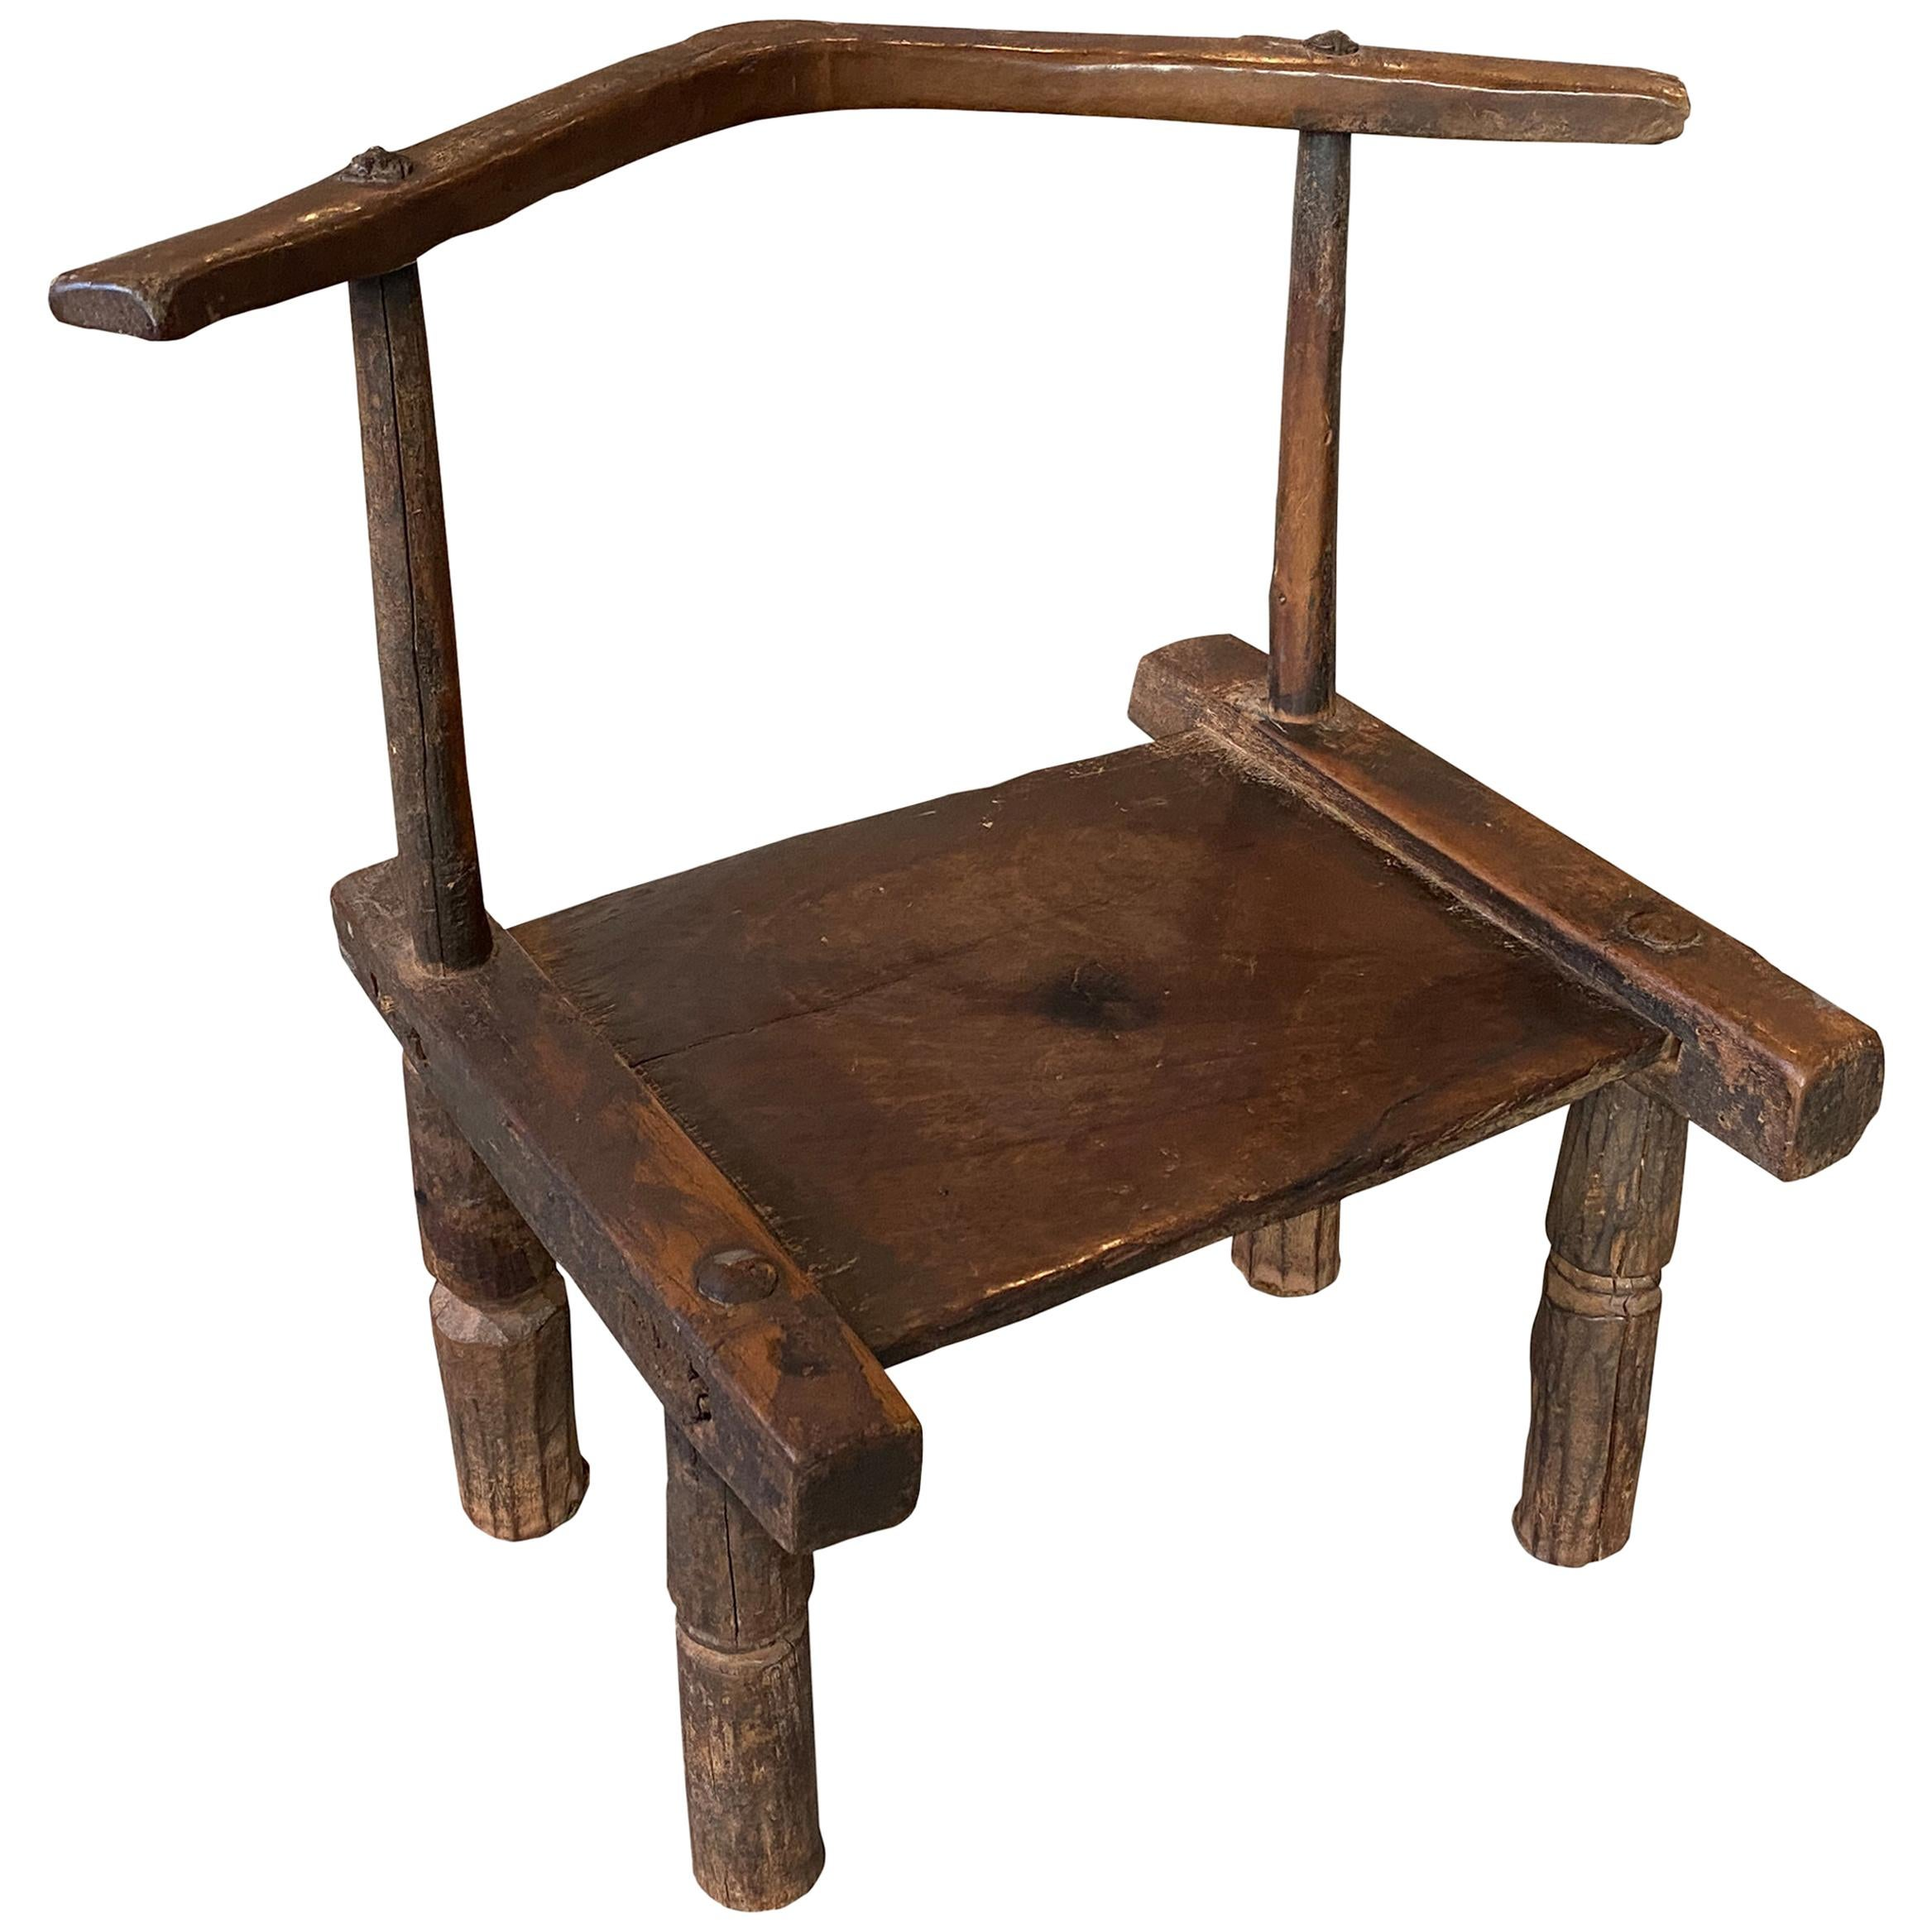 Andrianna Shamaris African Wooden Chair or Side Table, Ivory Coast